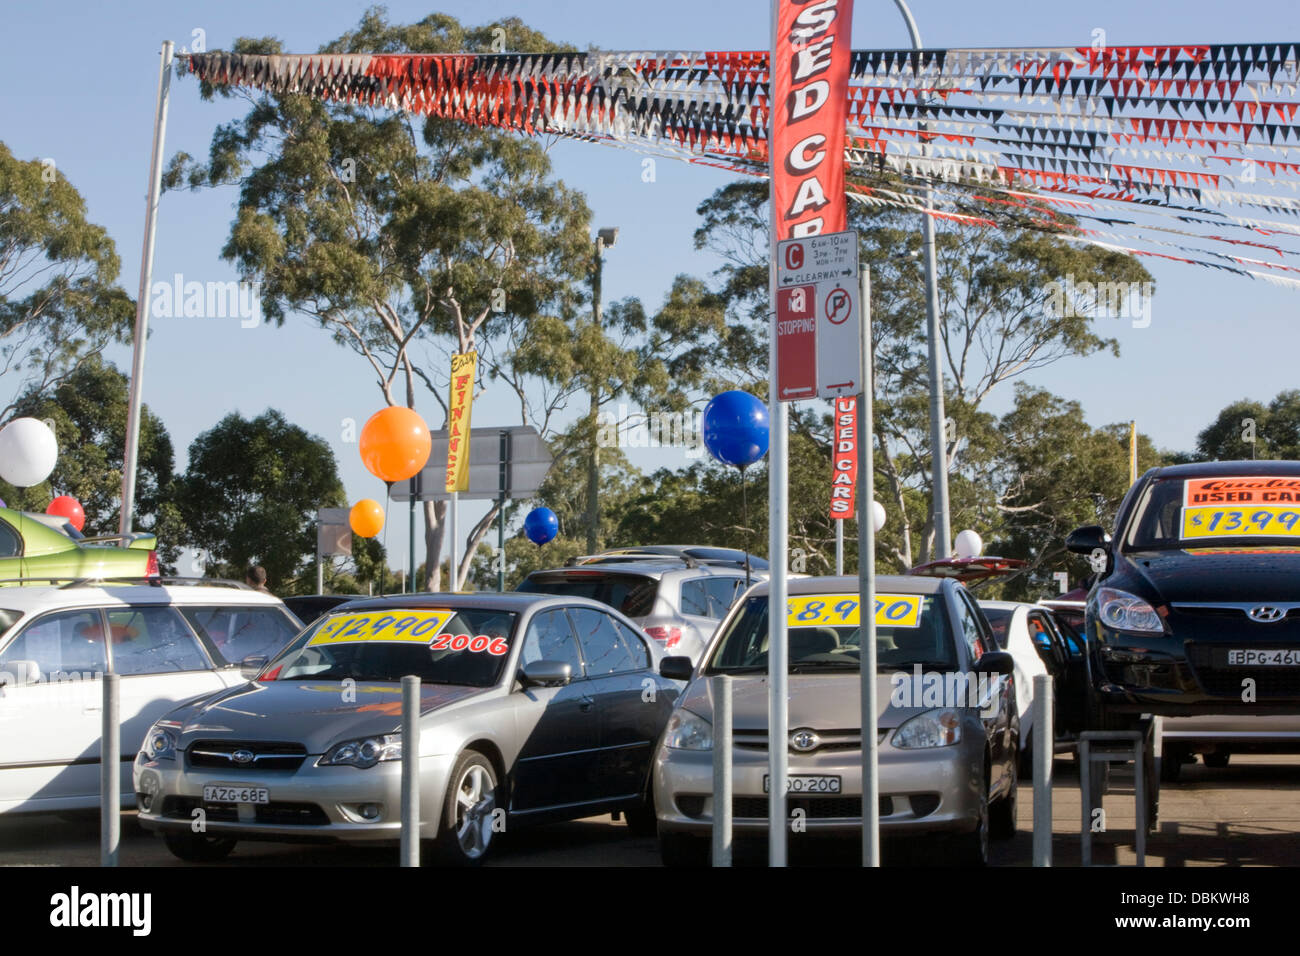 used cars for sale at a car lot in sydney,australia Stock Photo ...